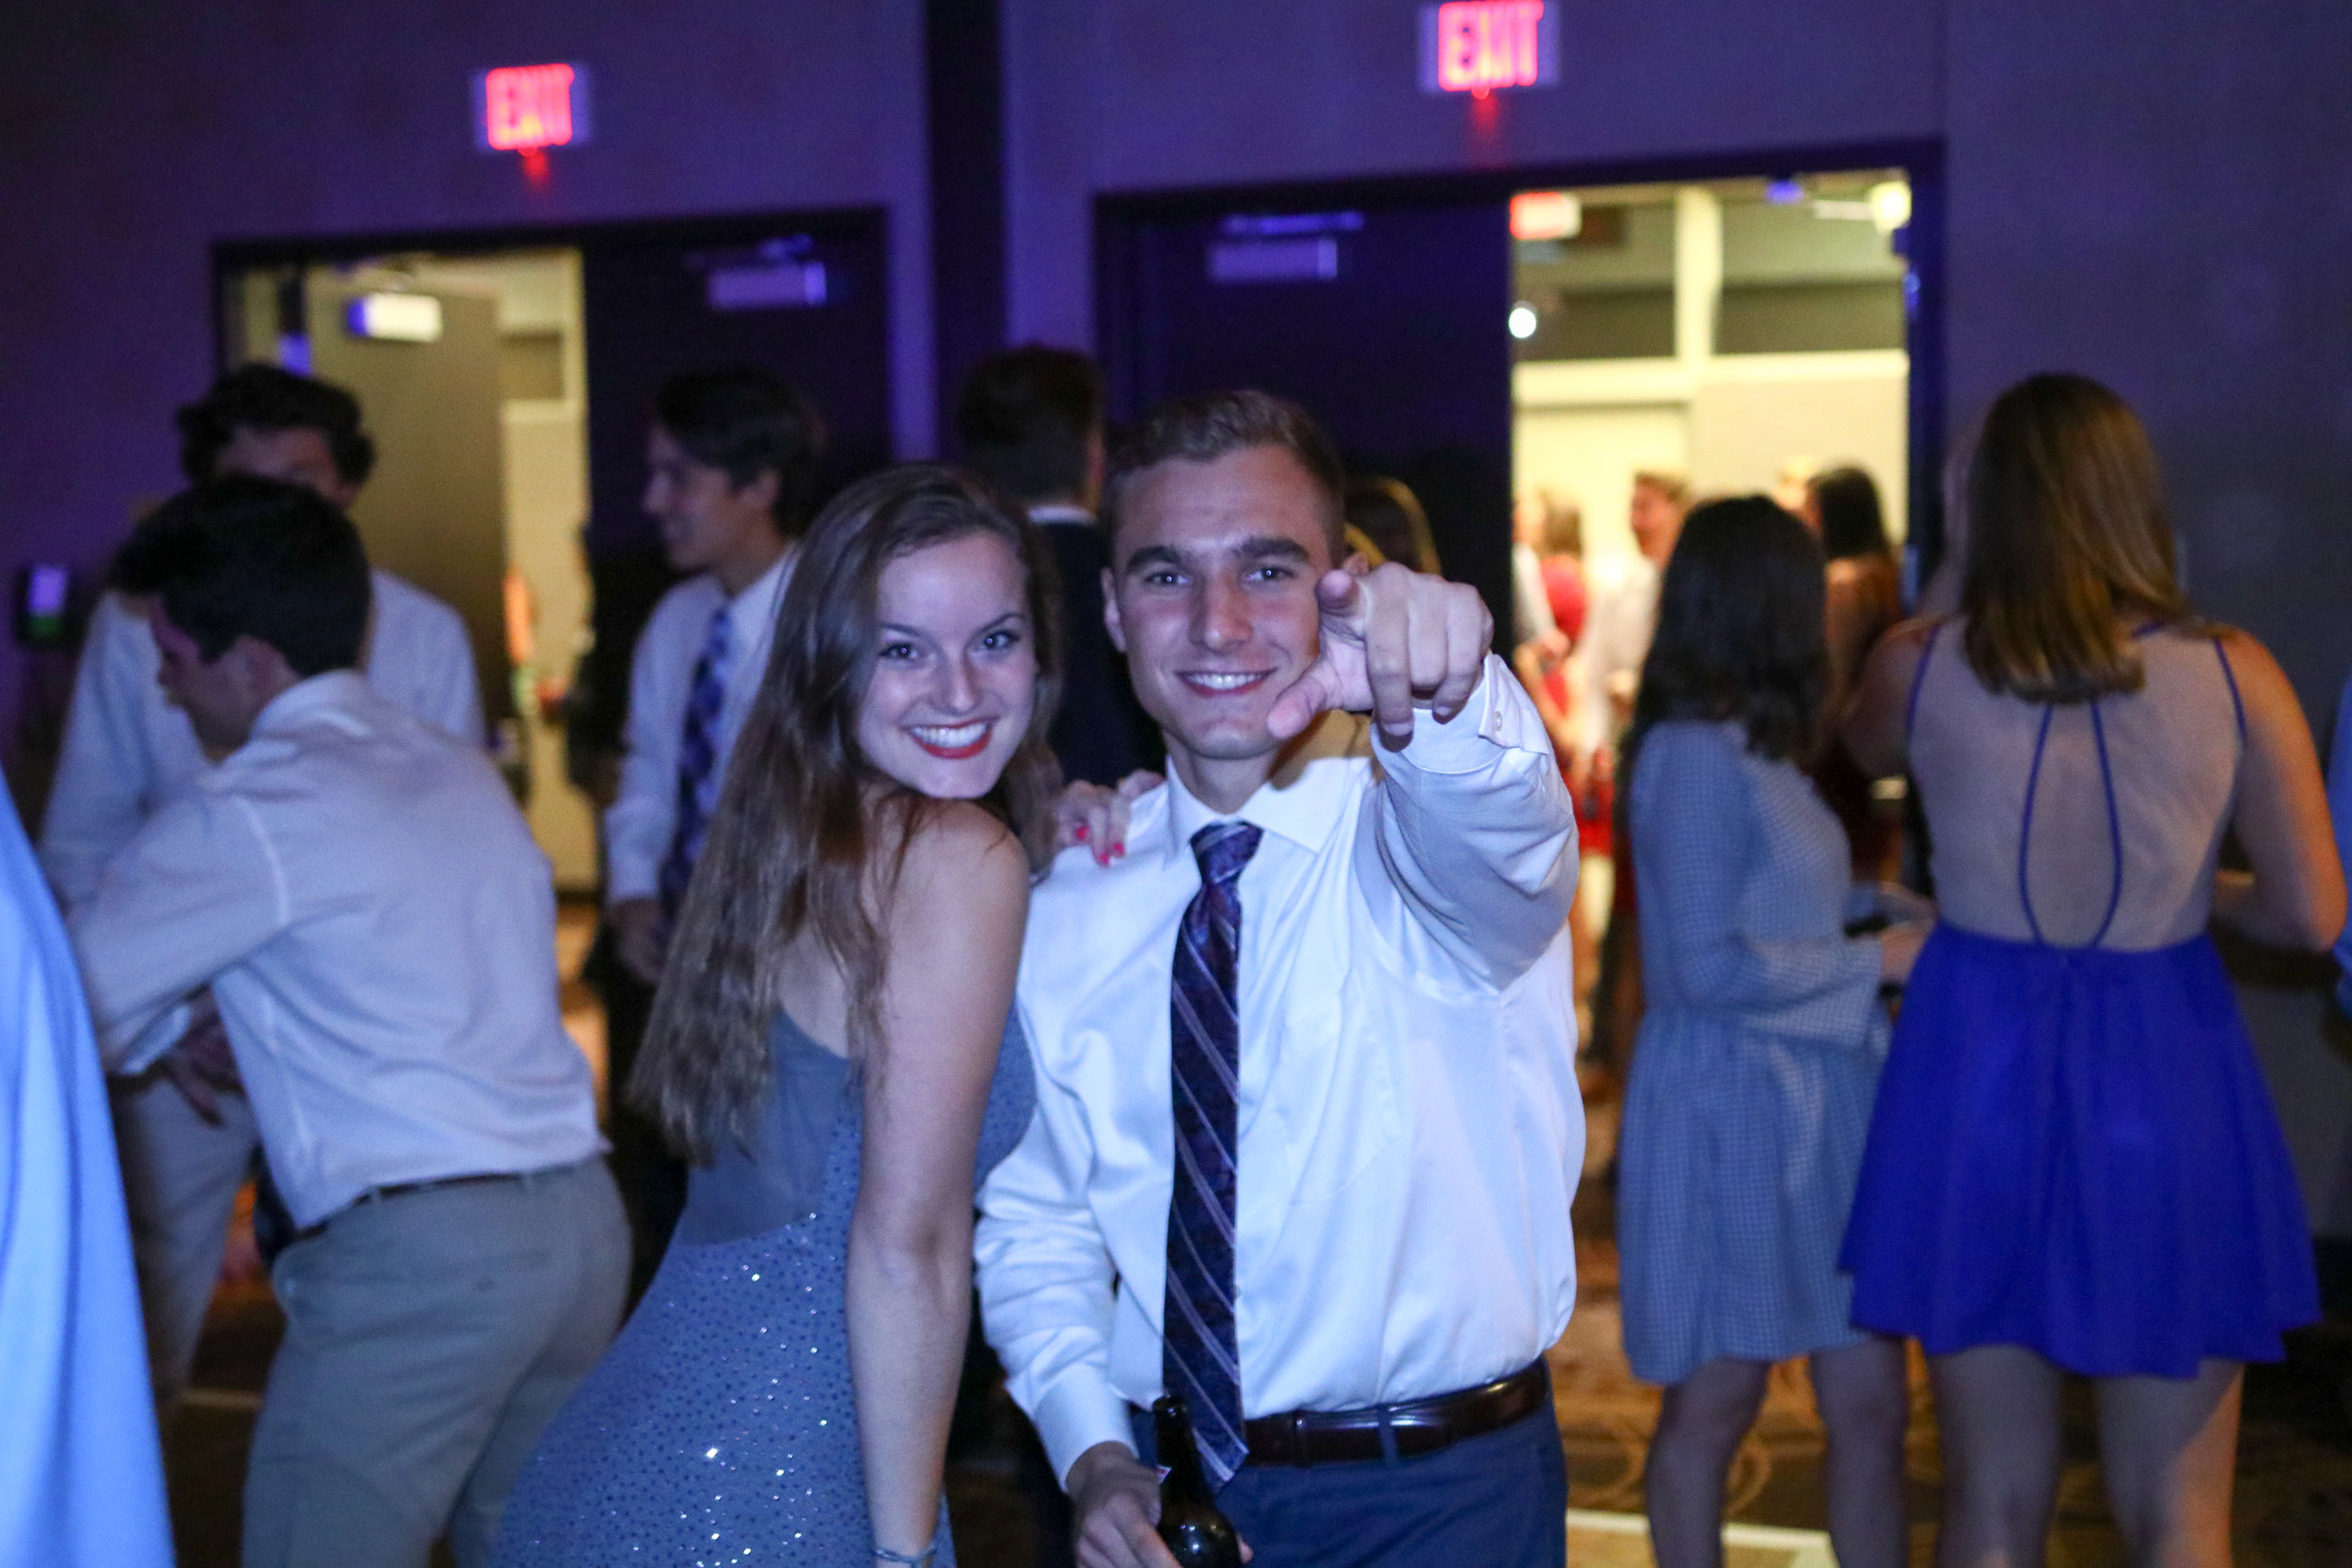 Consul Mirkovic busting out some moves on the dance floor during last year's Sig Sig event.